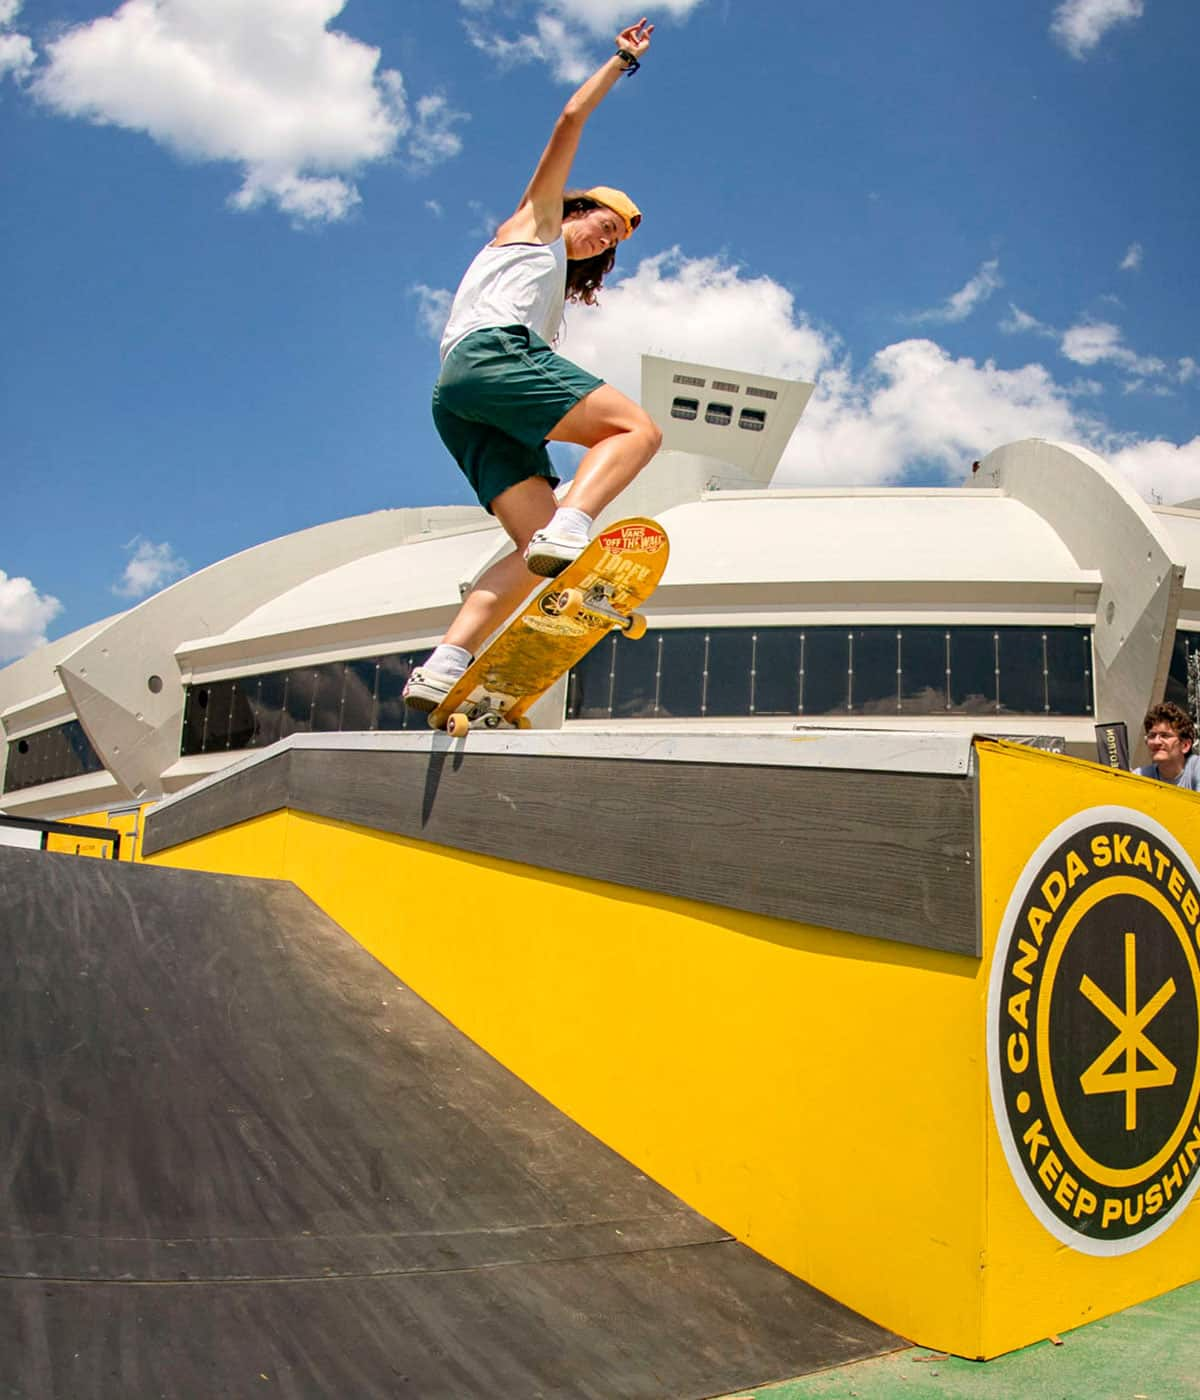 Canadian skateboarding: On deck at the Olympics